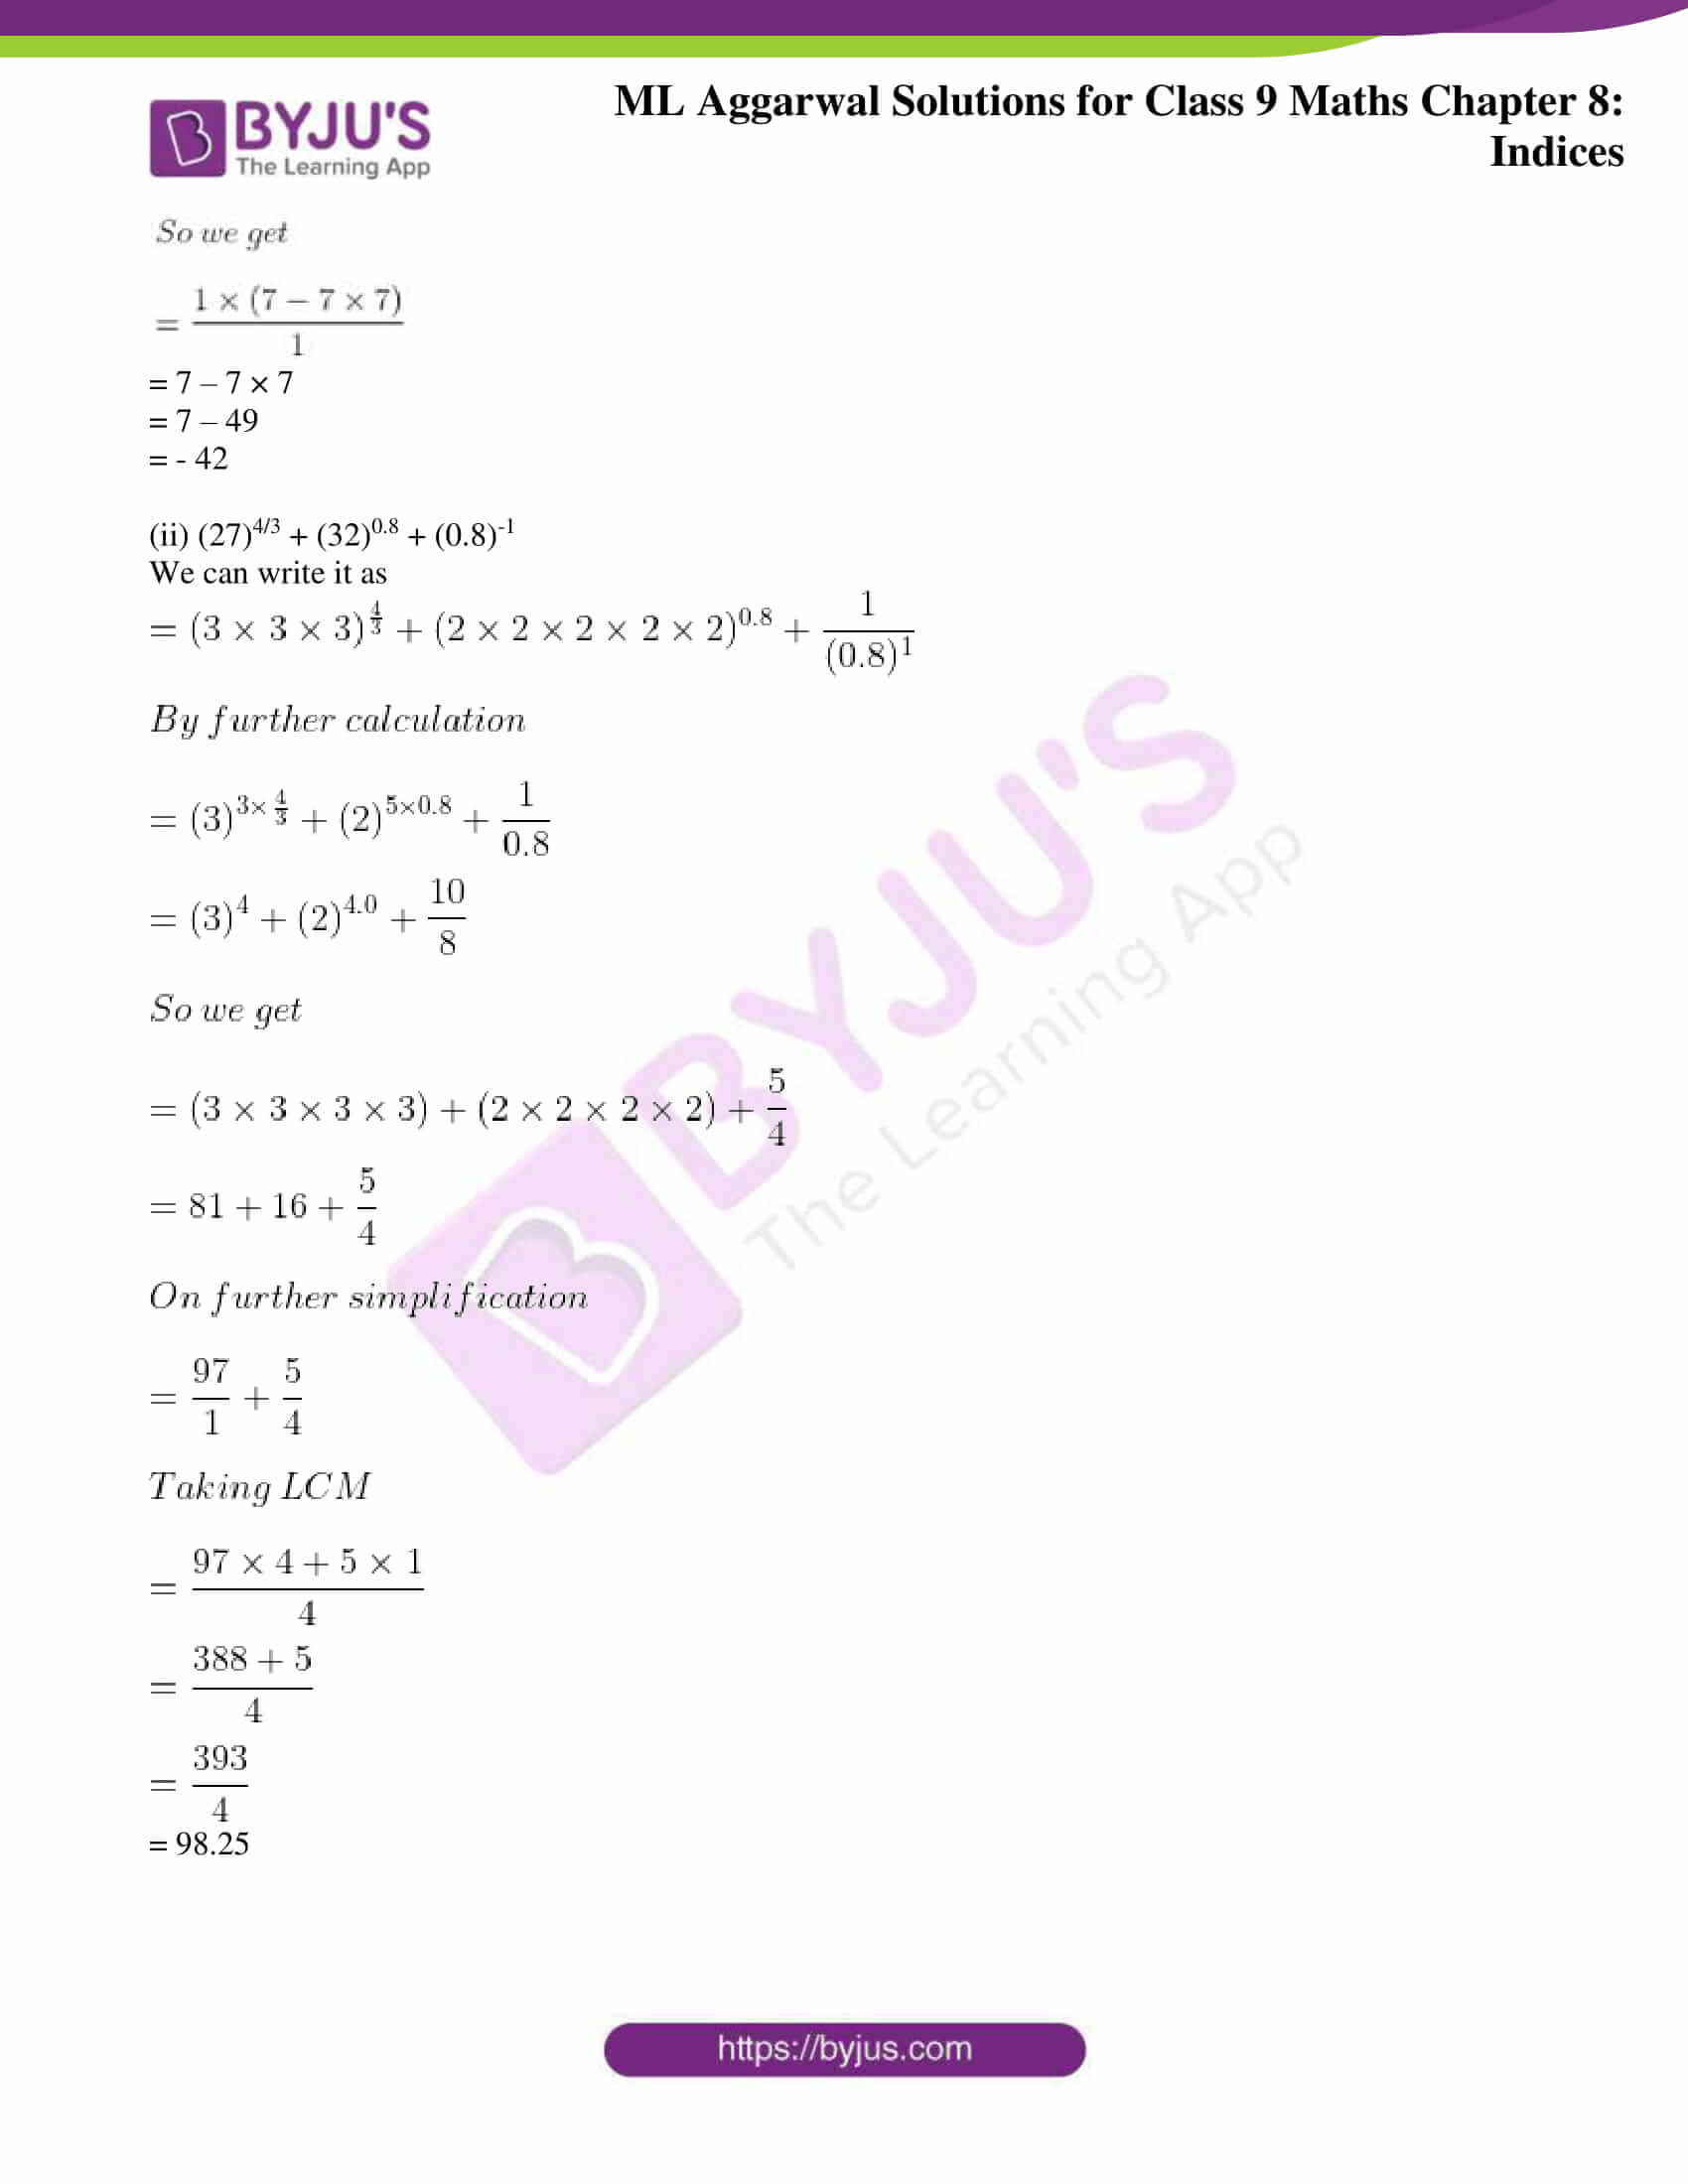 ml aggarwal solutions for class 9 maths chapter 8 18